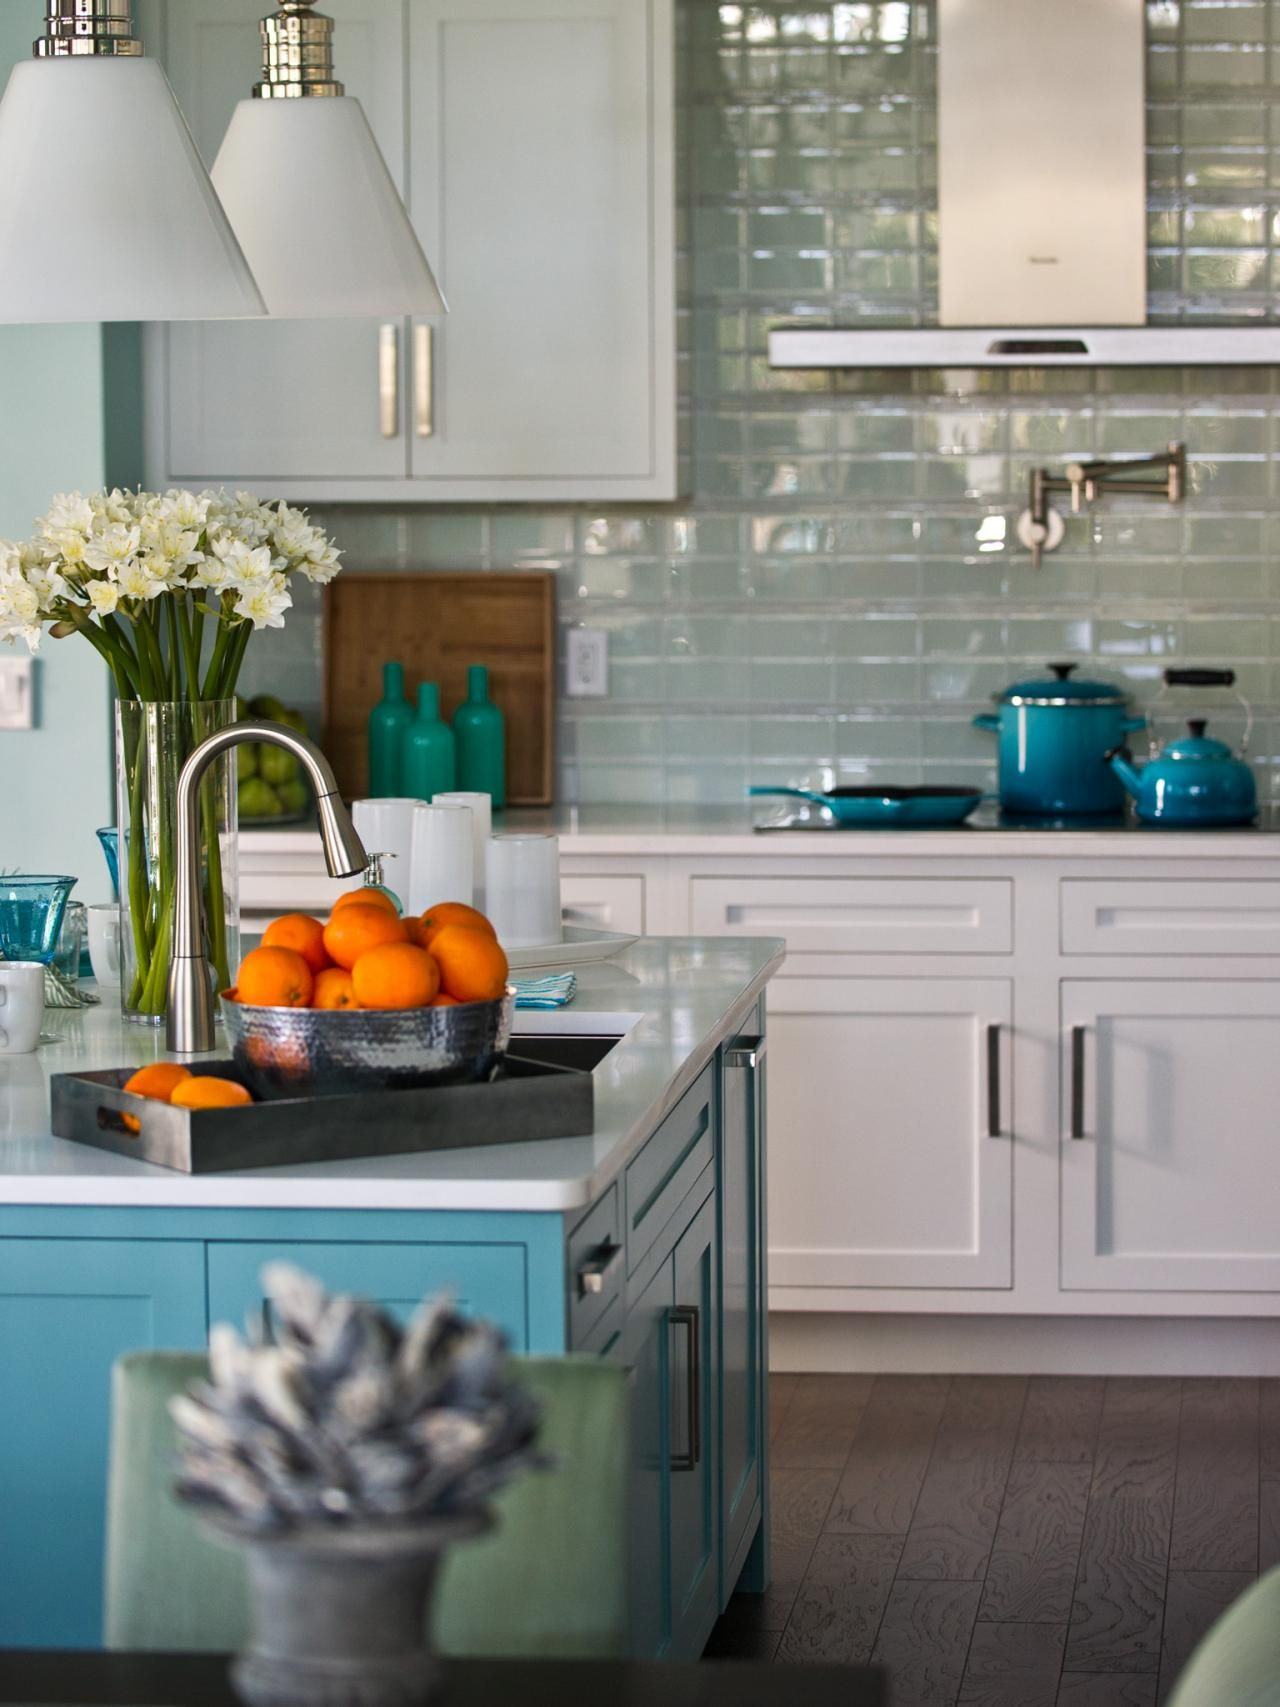 Inspirational Gray and Turquoise Kitchen